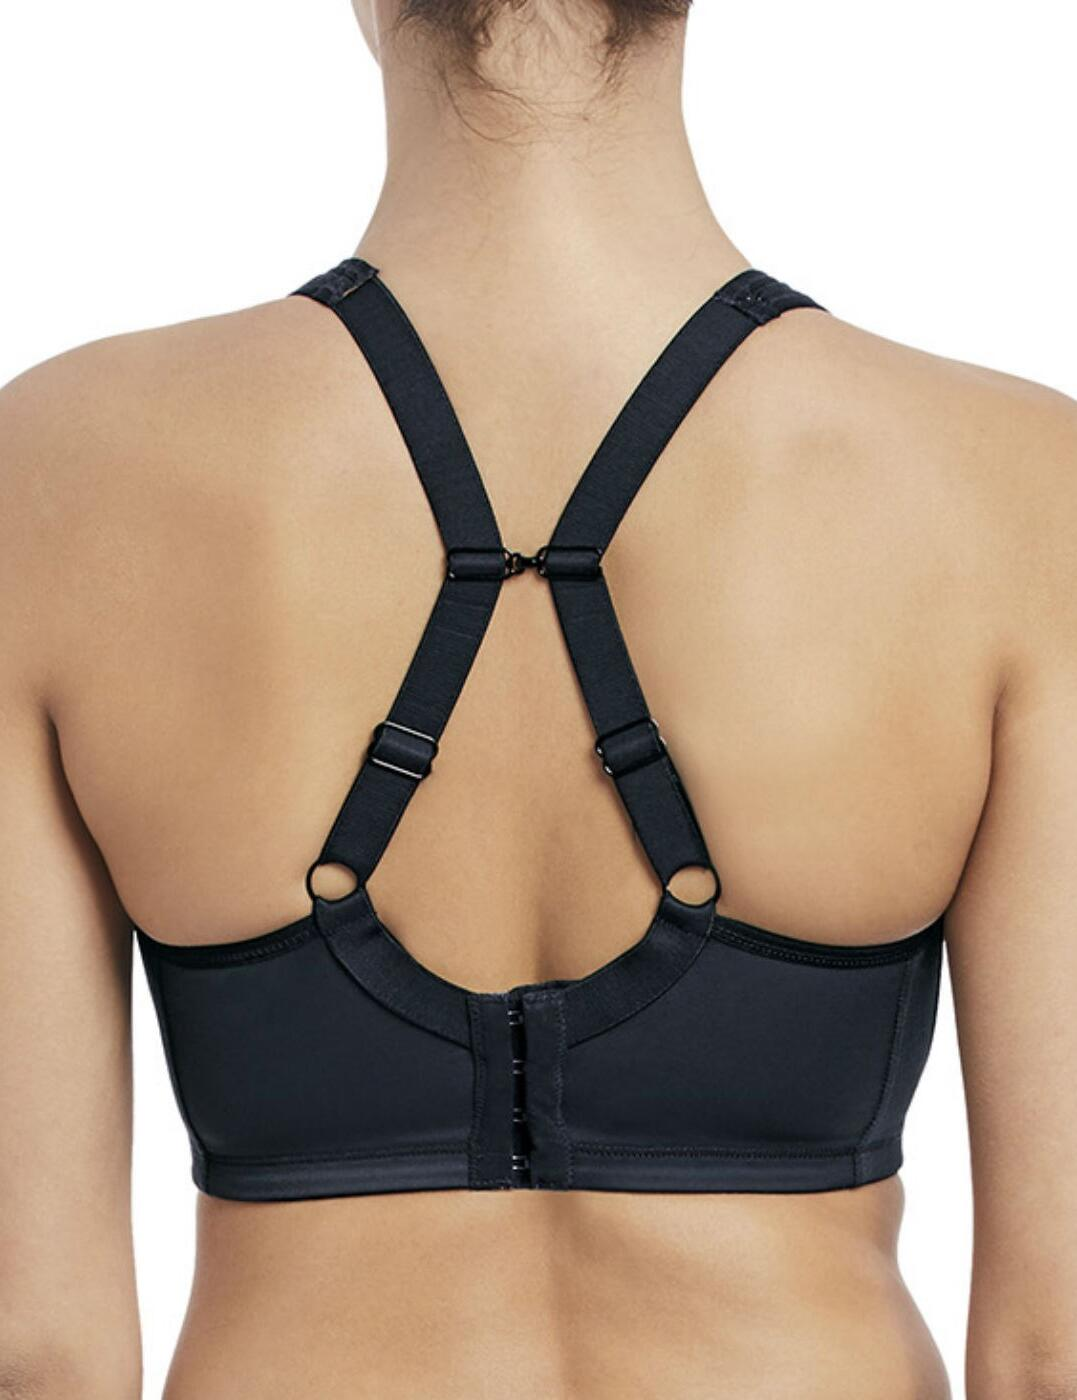 Freya-Active-Sonic-Sports-Bra-4892-Underwired-High-Impact-Gym-Workout-Bras thumbnail 17